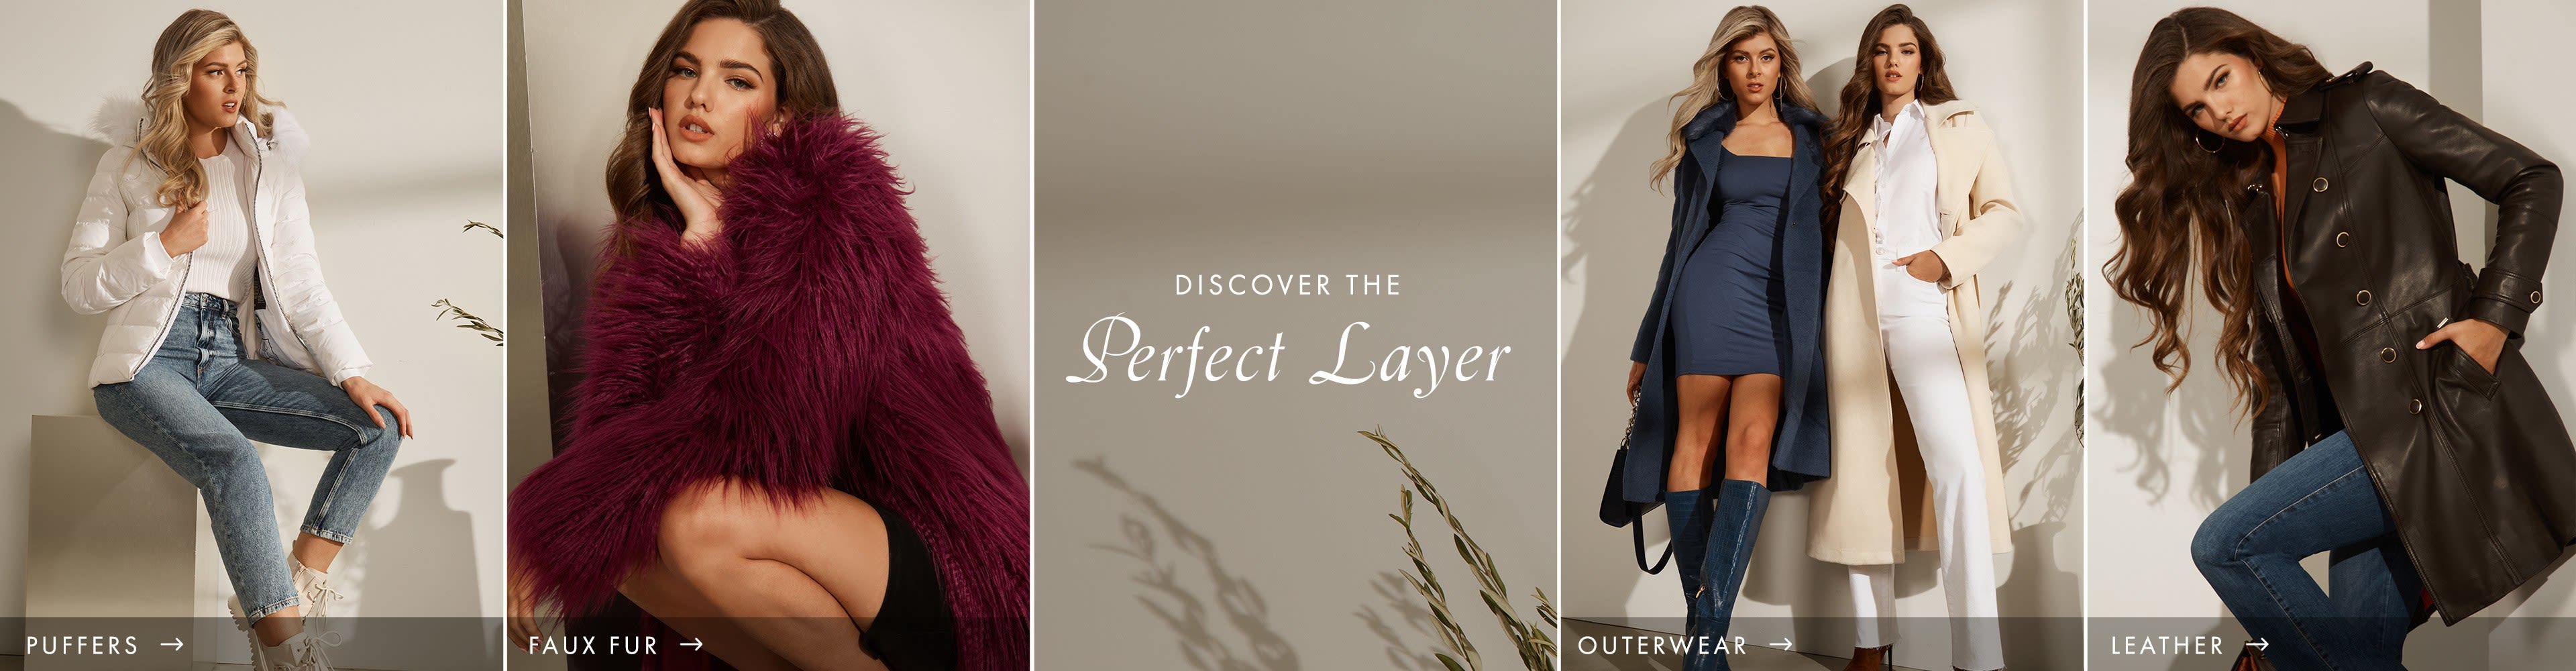 Discover the Perfect Layer